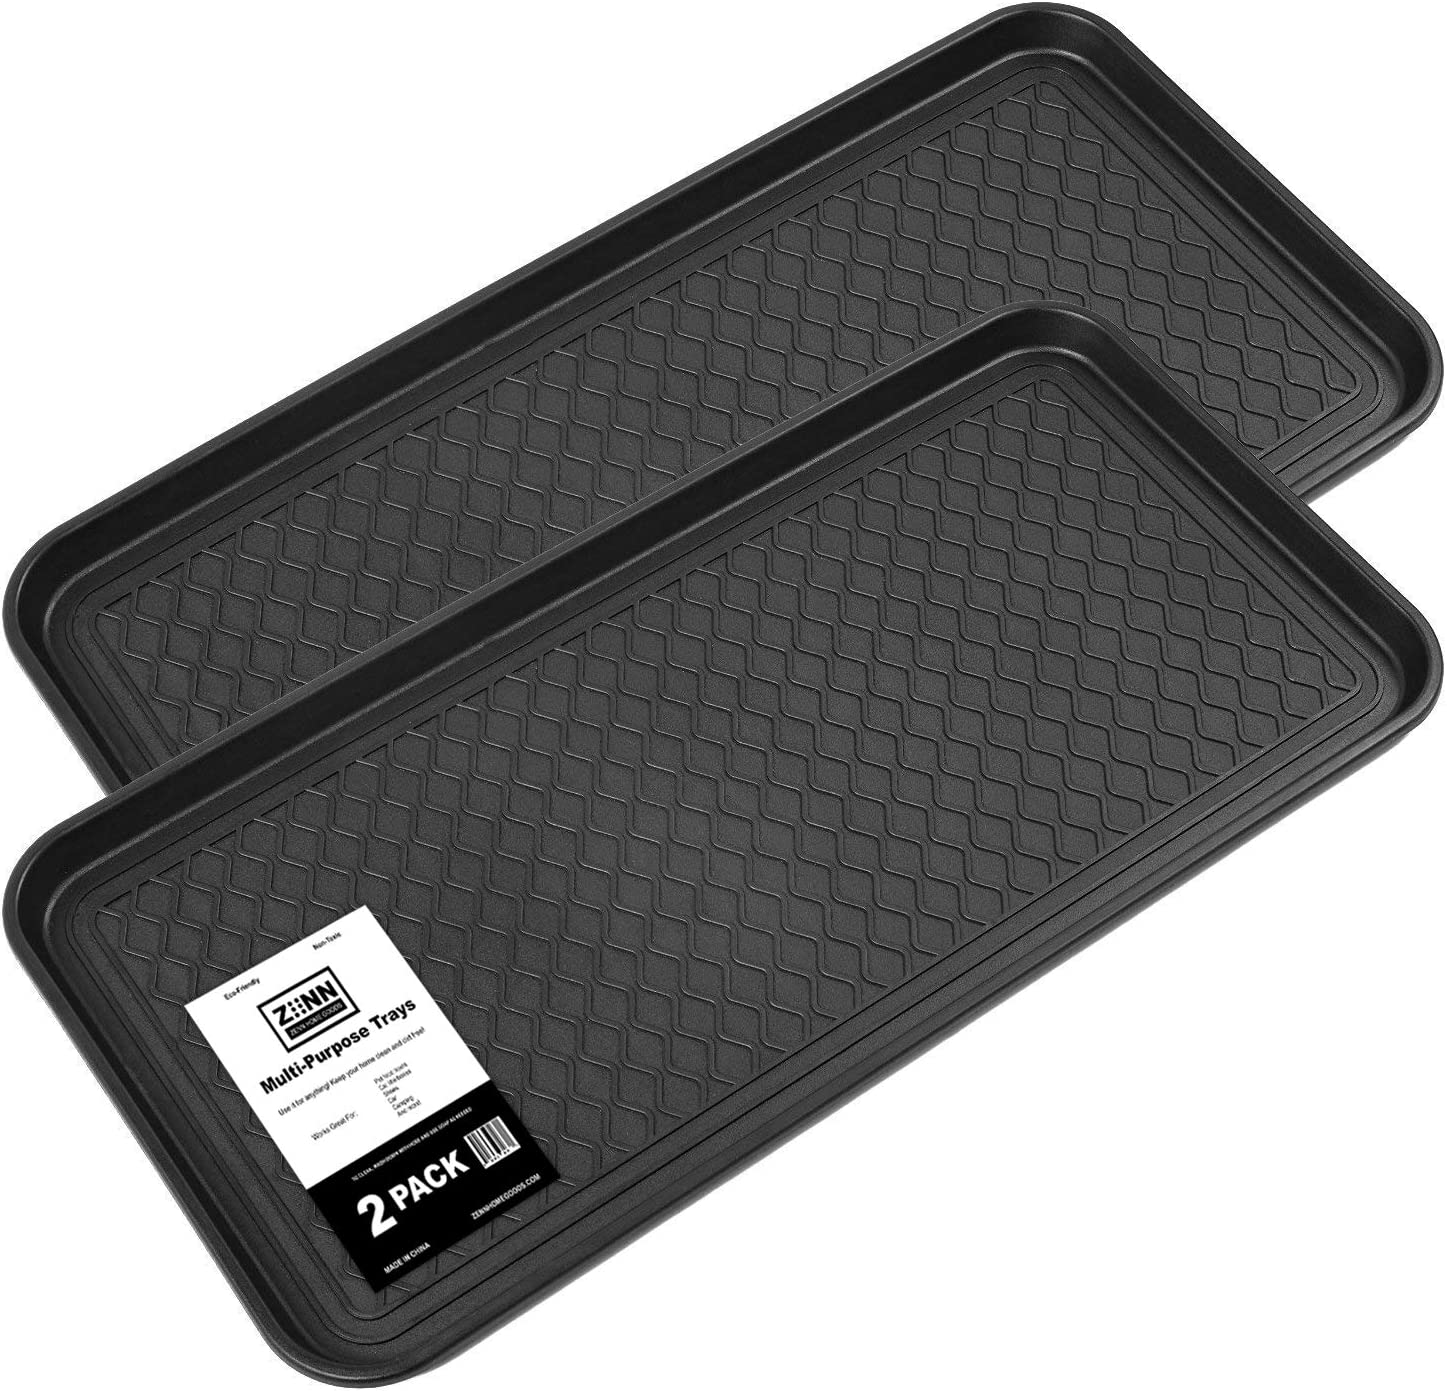 Zenn (2 PACK) Multi-Purpose Durable Black Tray 30